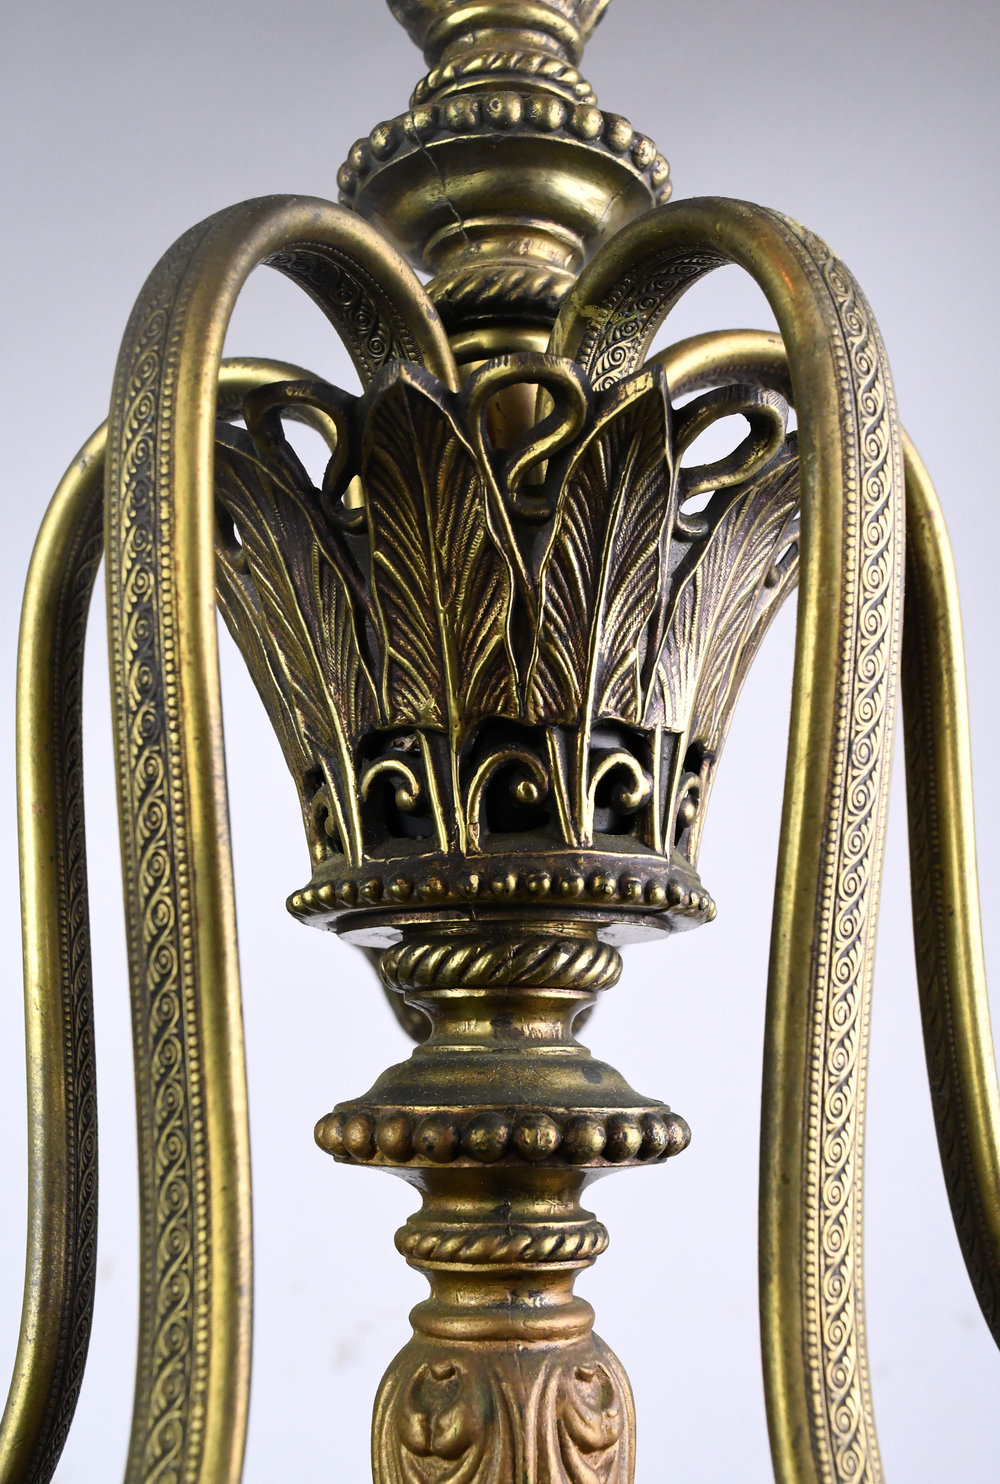 47432-five-candle-french-chandelier-arms-detail.jpg